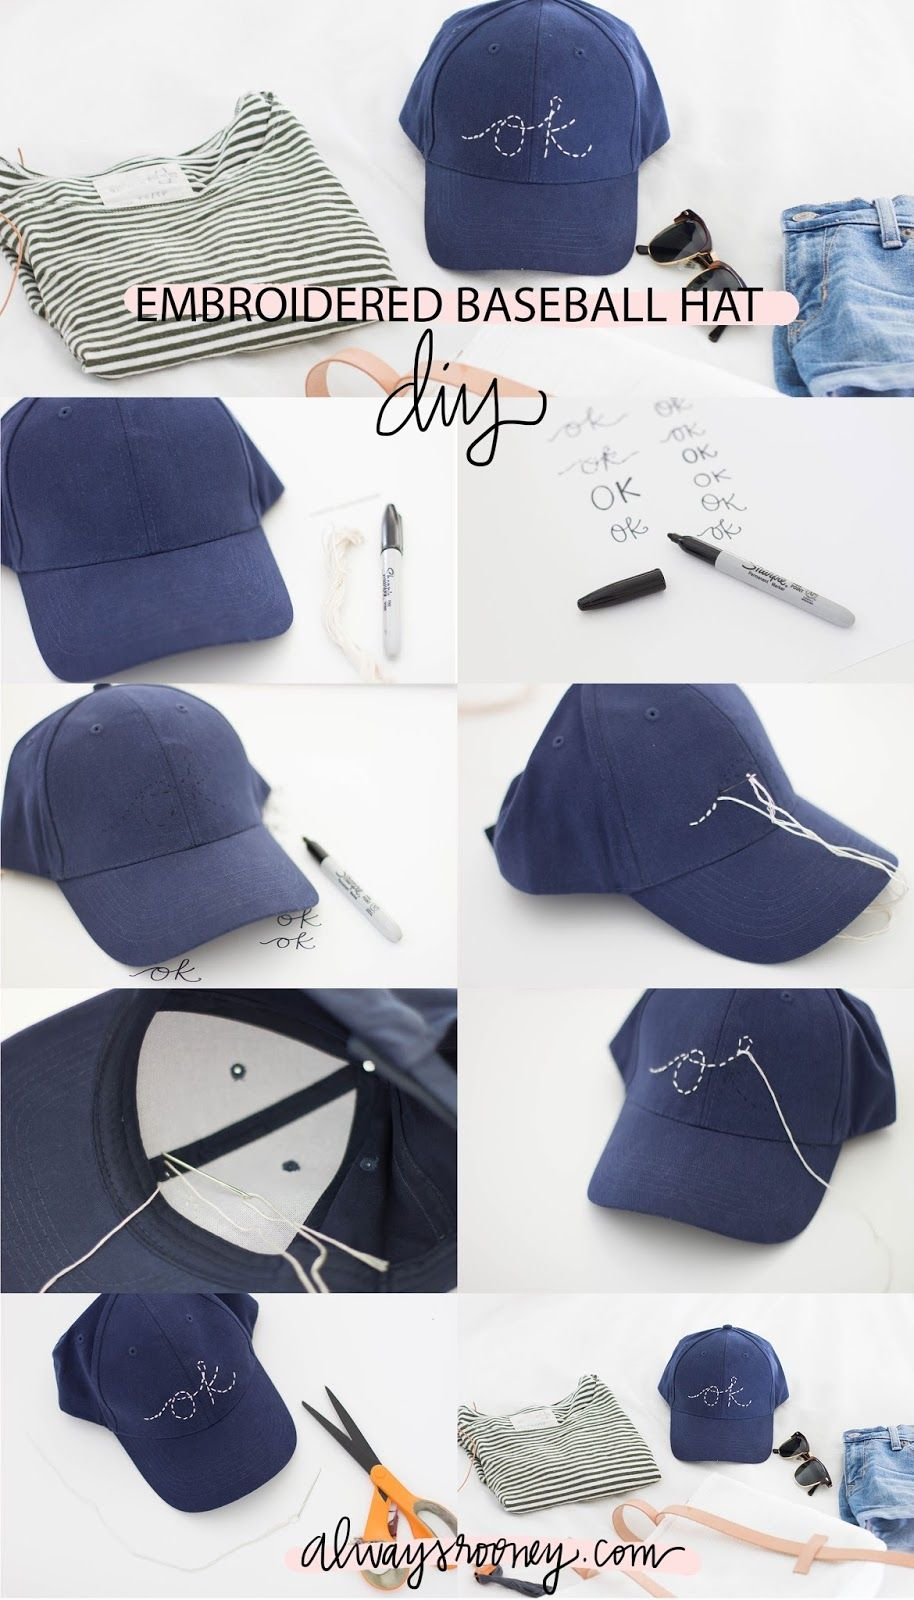 Embroidered Baseball Hat Diy Diy Embroidery Hat Diy Fashion Hat Embroidery